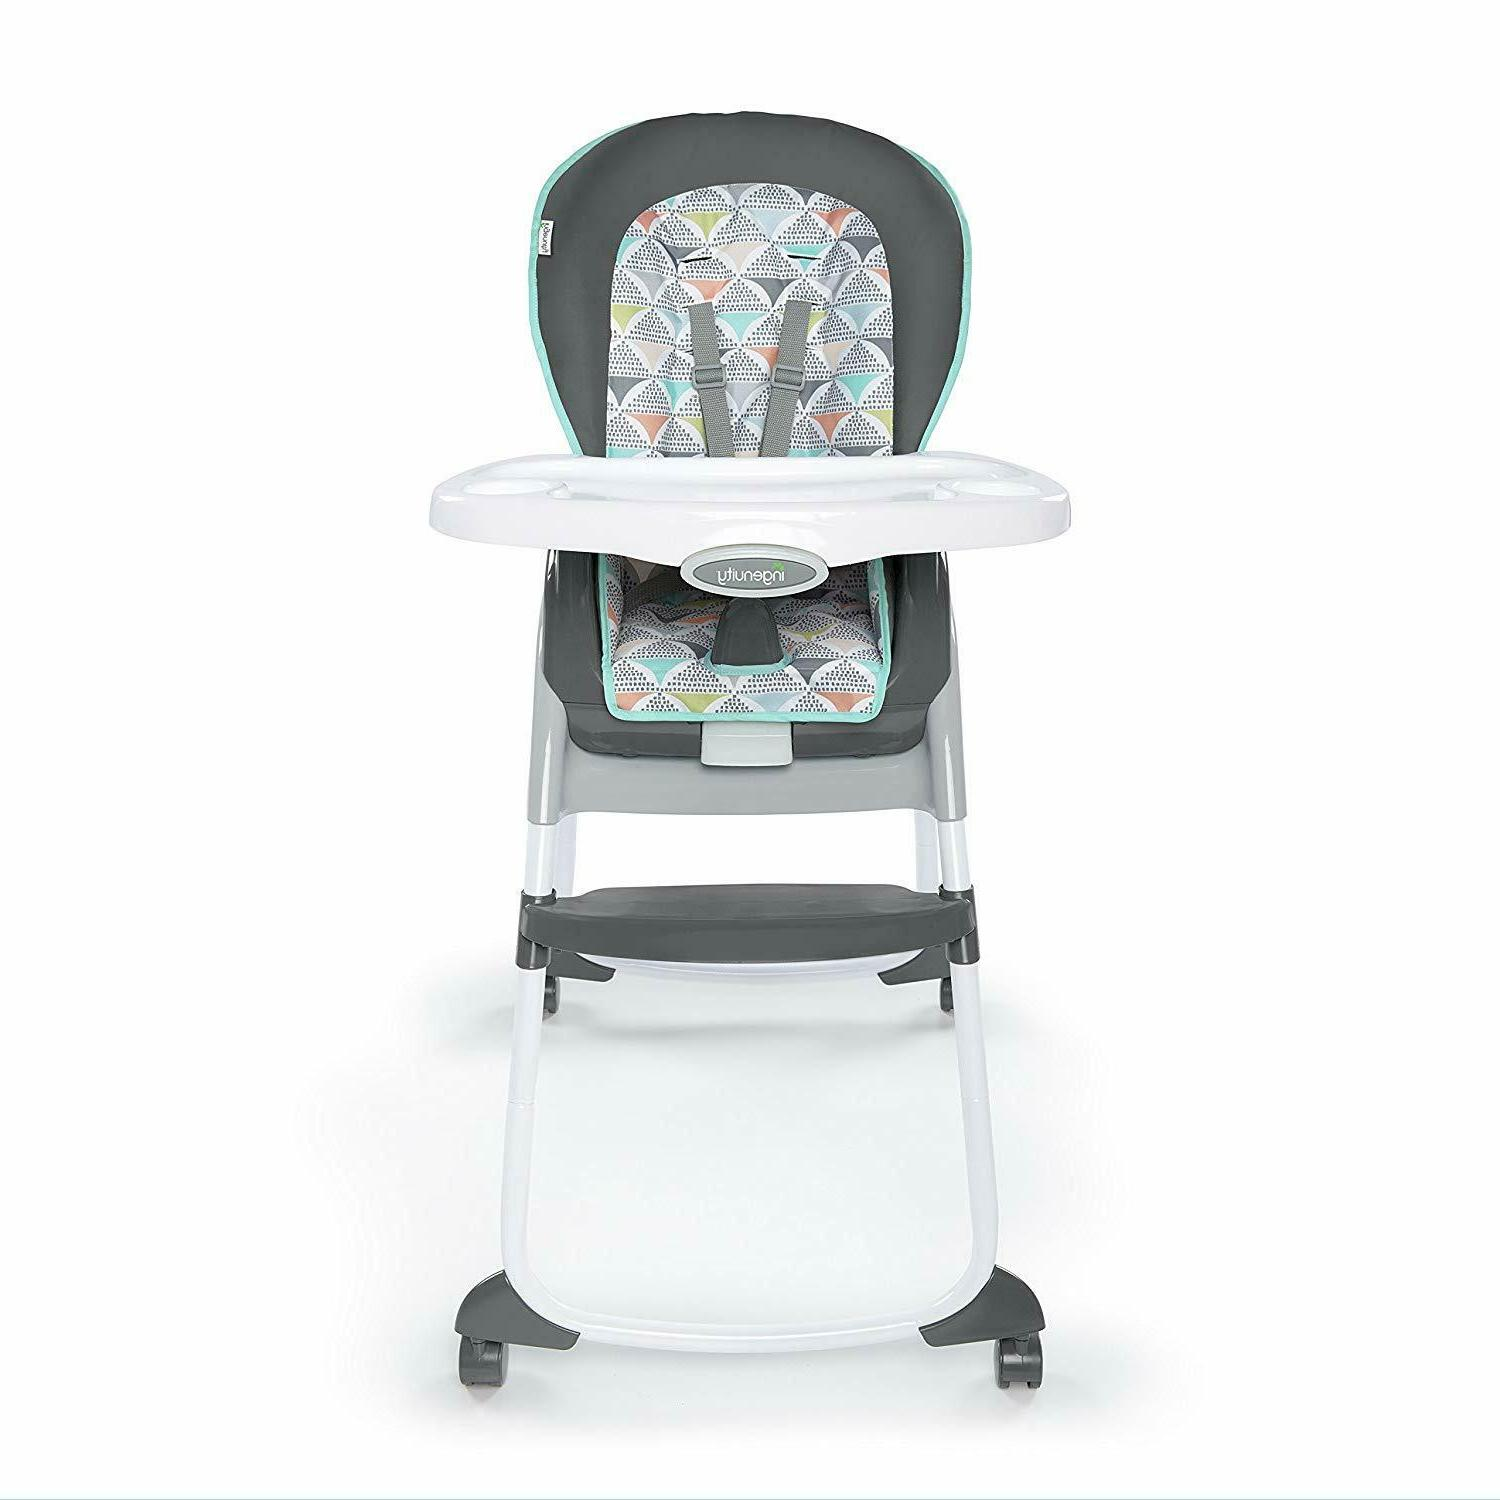 Ingenuity Trio 3-in-1 High Chair - Bryant - High Chair, Todd